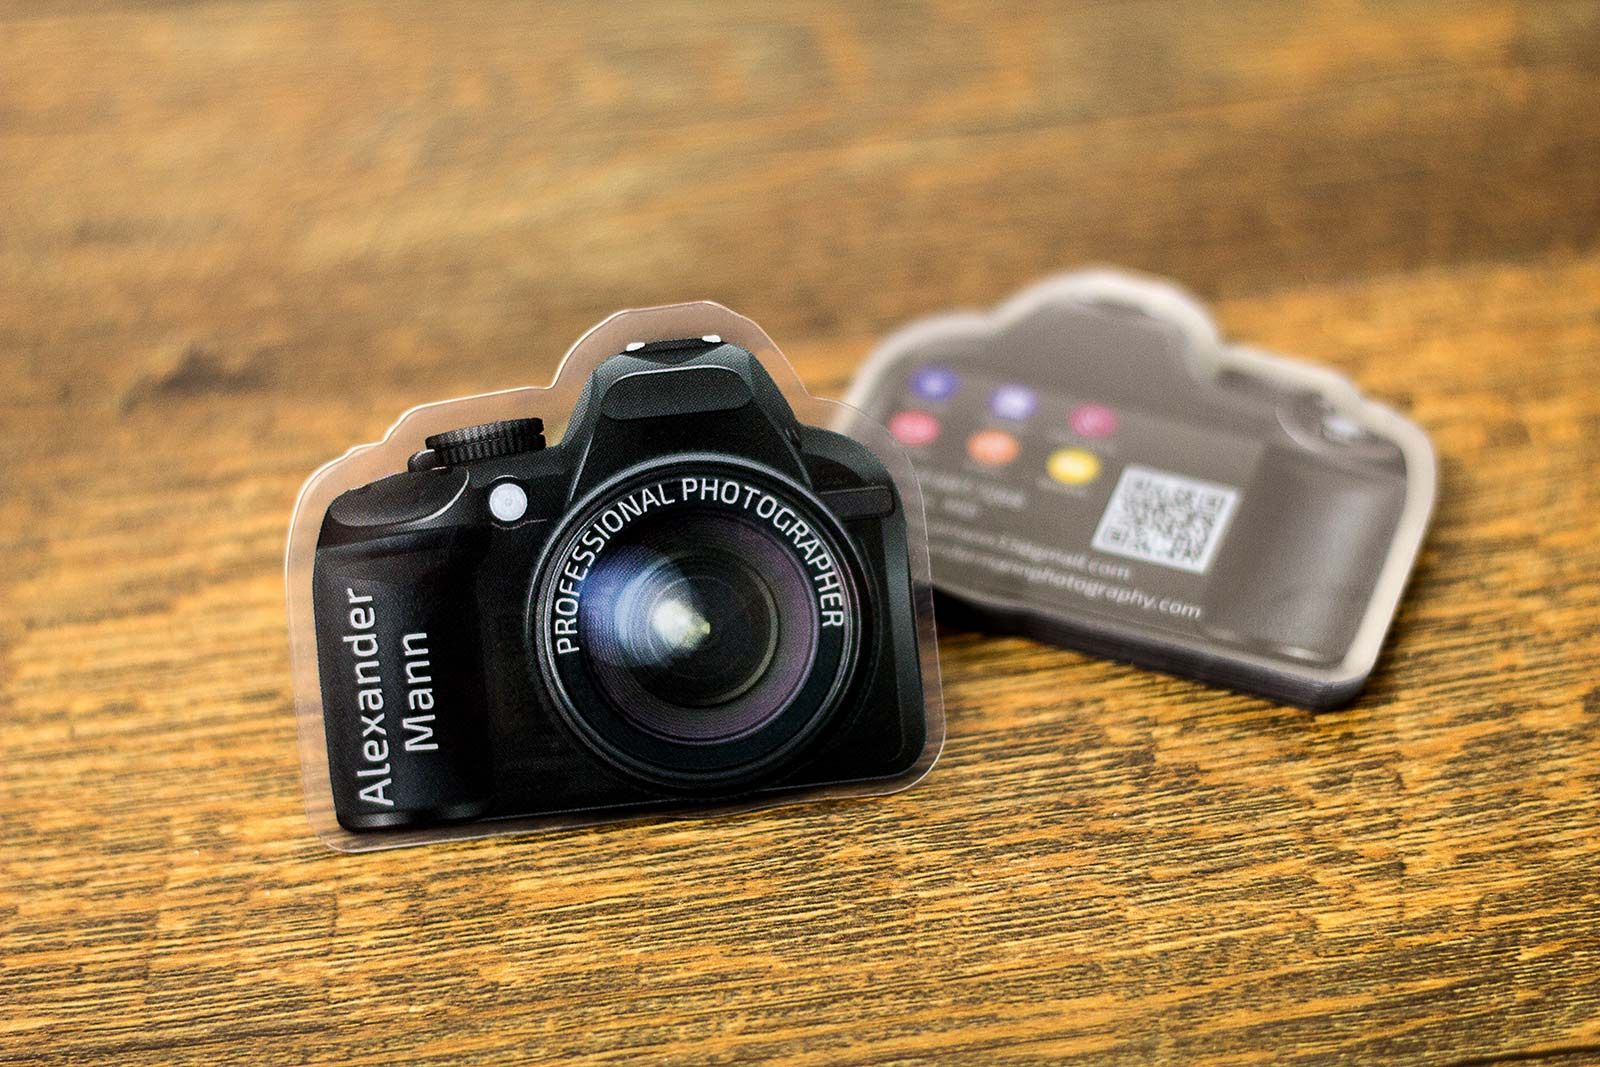 Camera Shaped Business Card Photography Business Cards Shaped Business Cards Business Cards Creative